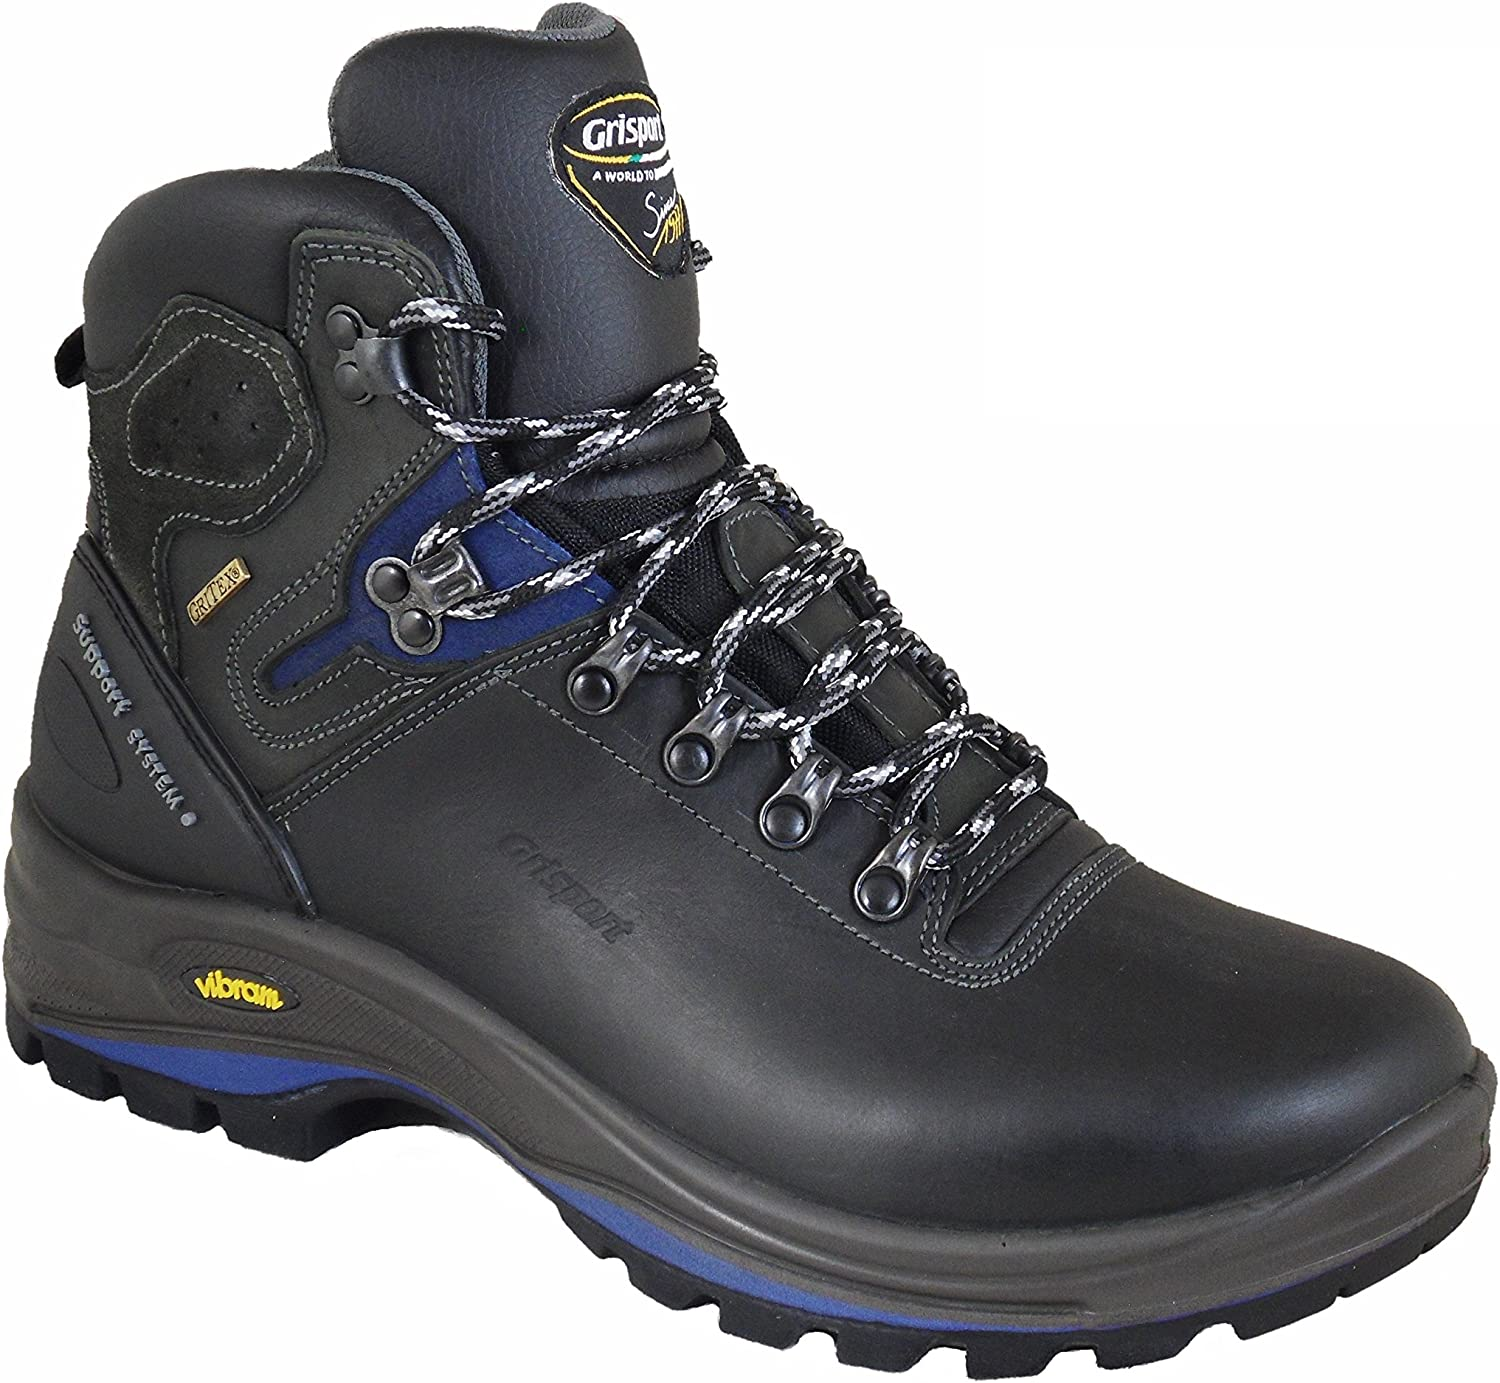 greyport Mens Summit Walker Mens Walking Boots With Vibram Sole